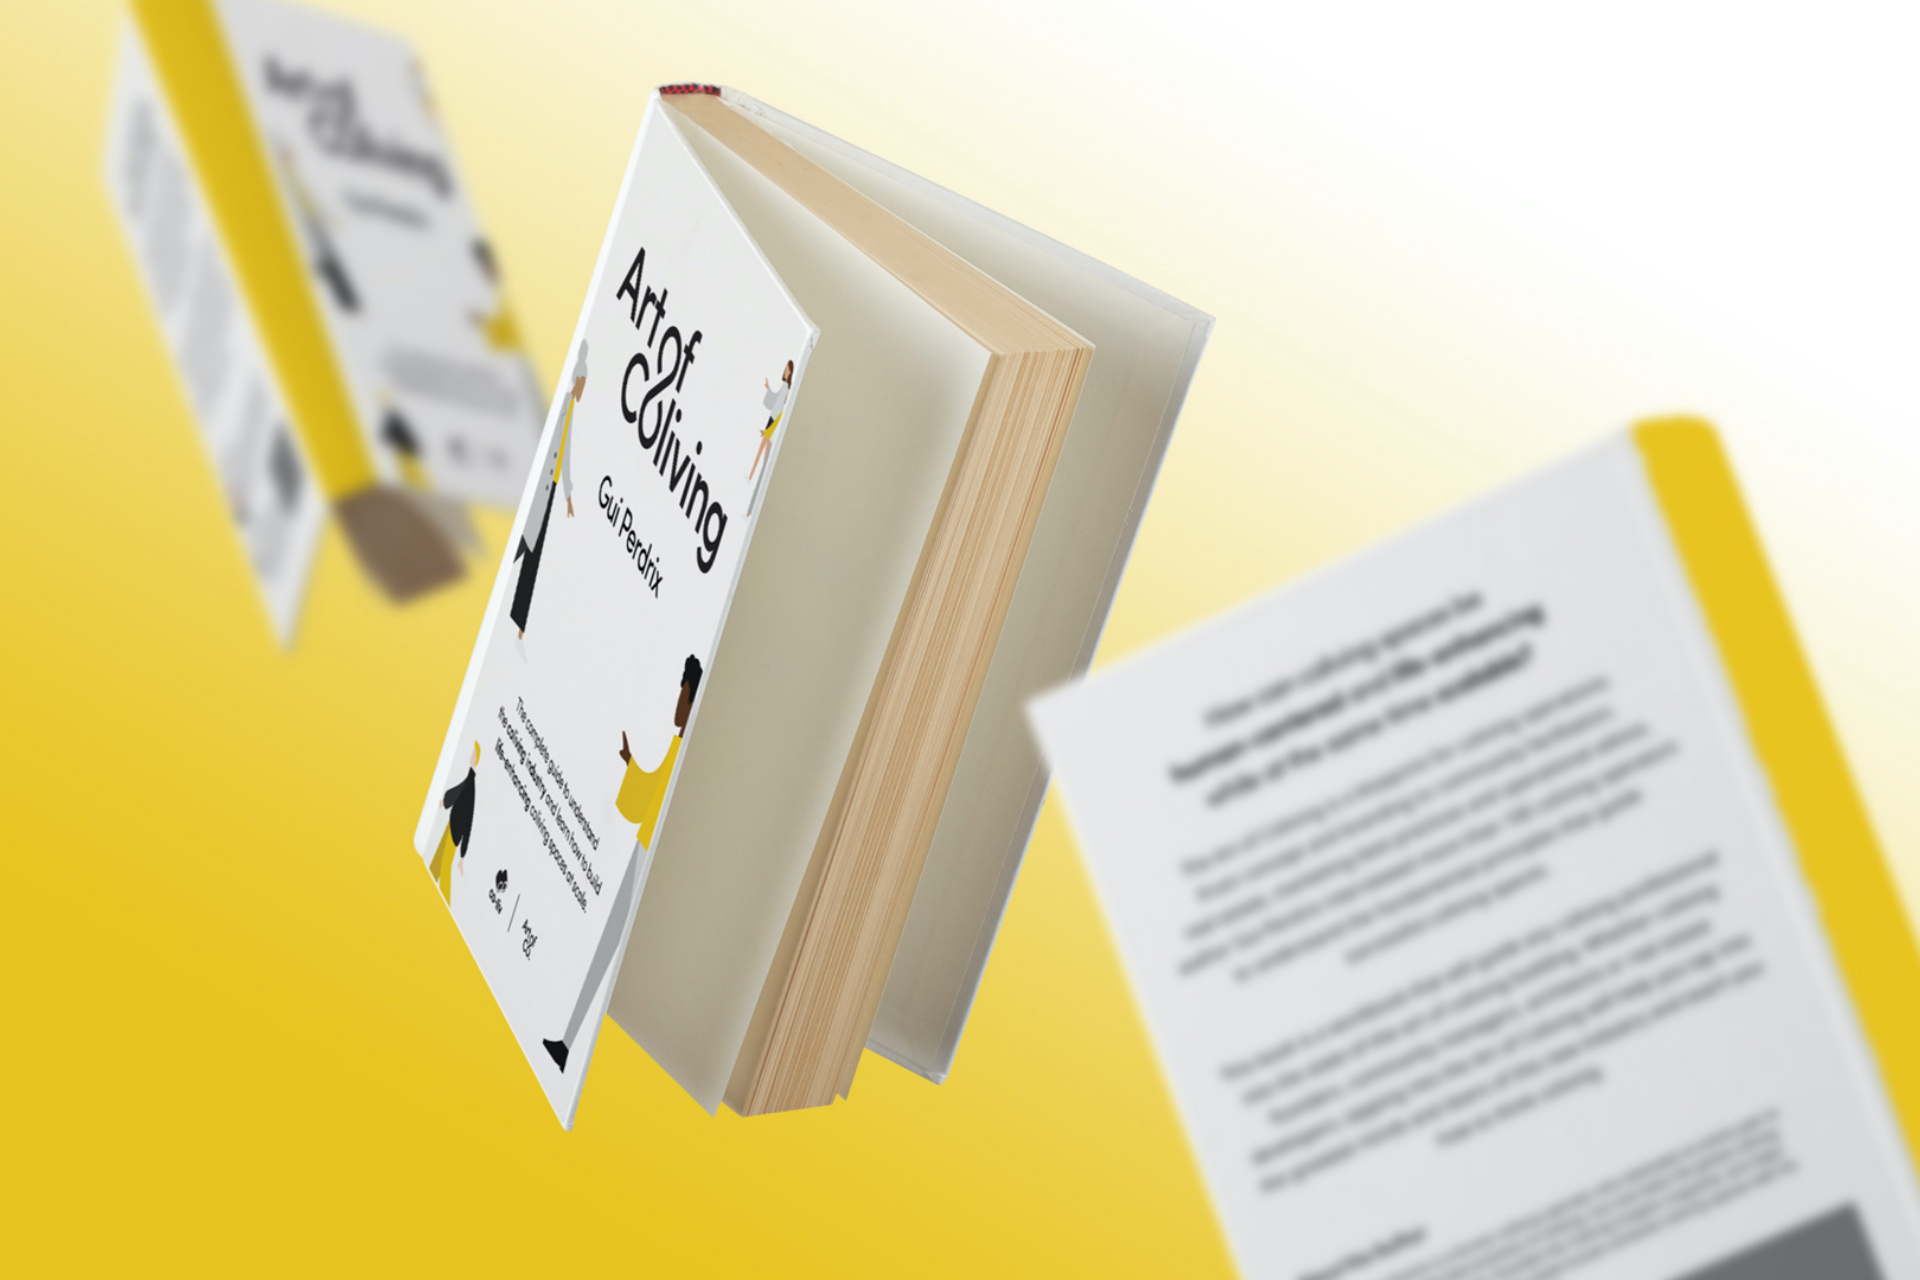 Art of Coliving book mockups by SPX with yellow background